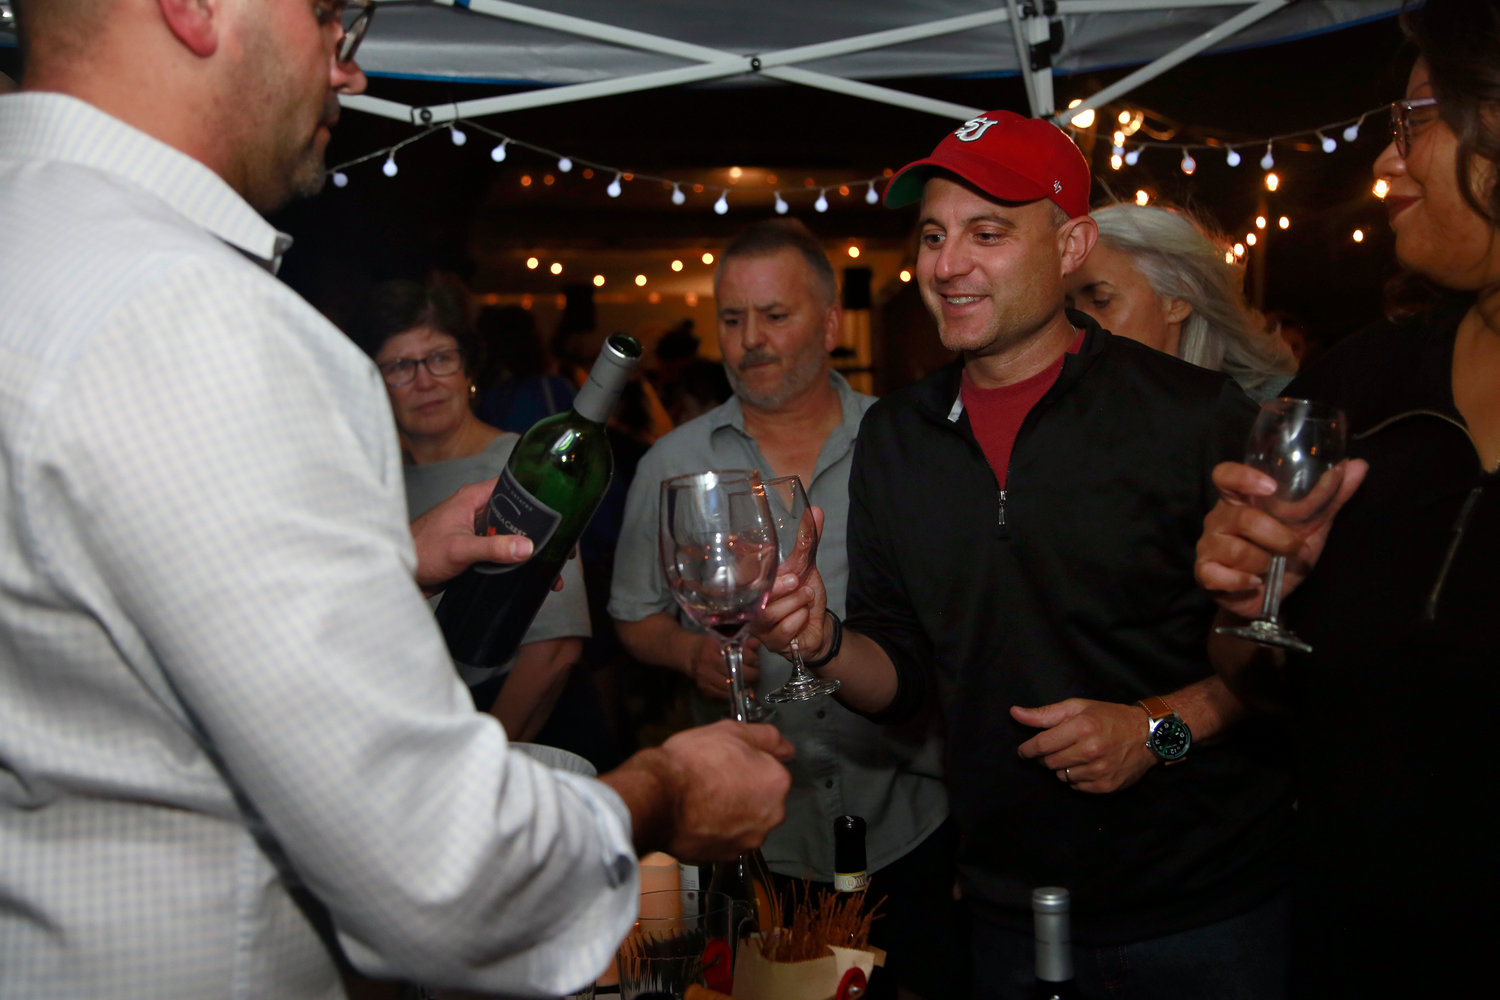 Chris Parra, left, provided wine for many residents, including Robert Drysielski at Crossroads Farm's annual wine tasting fundraiser on Sept. 21.